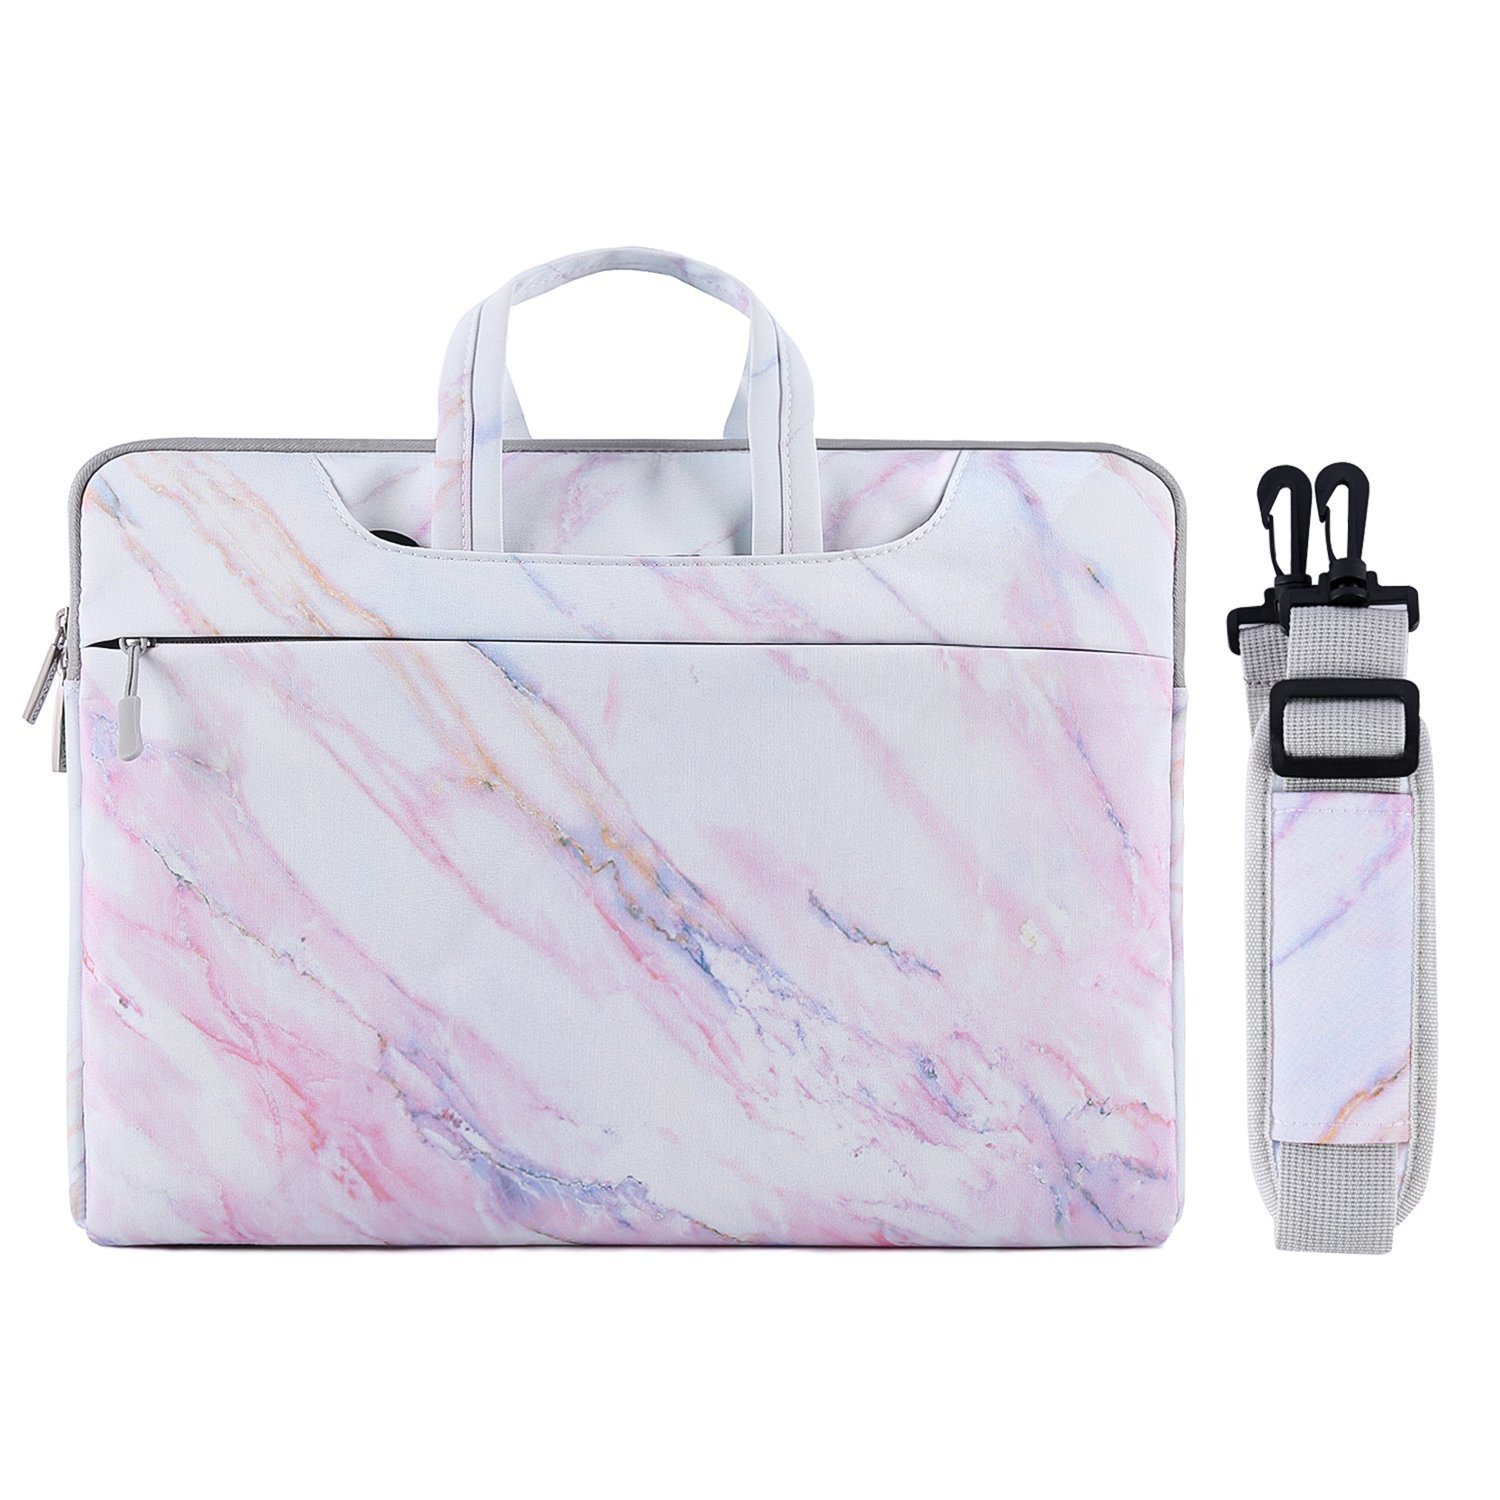 MOSISO Laptop Shoulder Bag for 15 Inch New MacBook Pro with Touch Bar A1990 & A1707 2018 2017 2016, Also Fit 14 Inch Notebook Ultrabook, Protective Canvas Marble Pattern Briefcase Sleeve, White